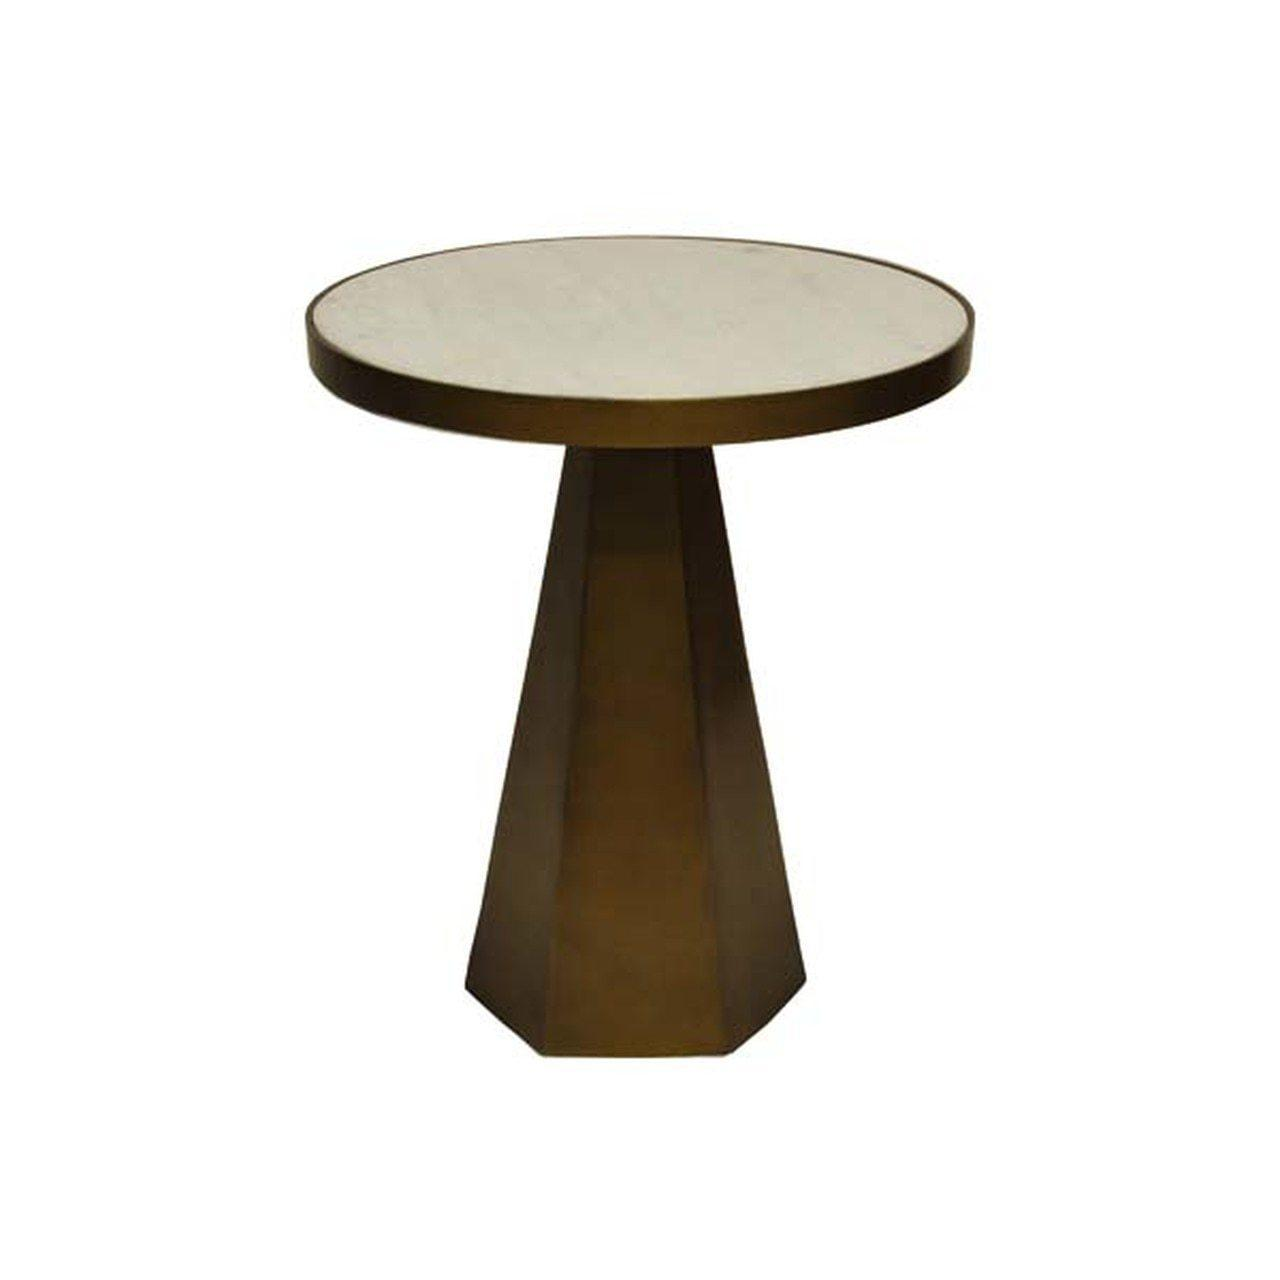 Woodrowabrwhmworlds Away With Its Modern Geometric Form And Mixed Materials Palette Our Woodrow Side Table Is On Trend In Every Way Finished In Antique Brass With A Luminous White Marble Top It